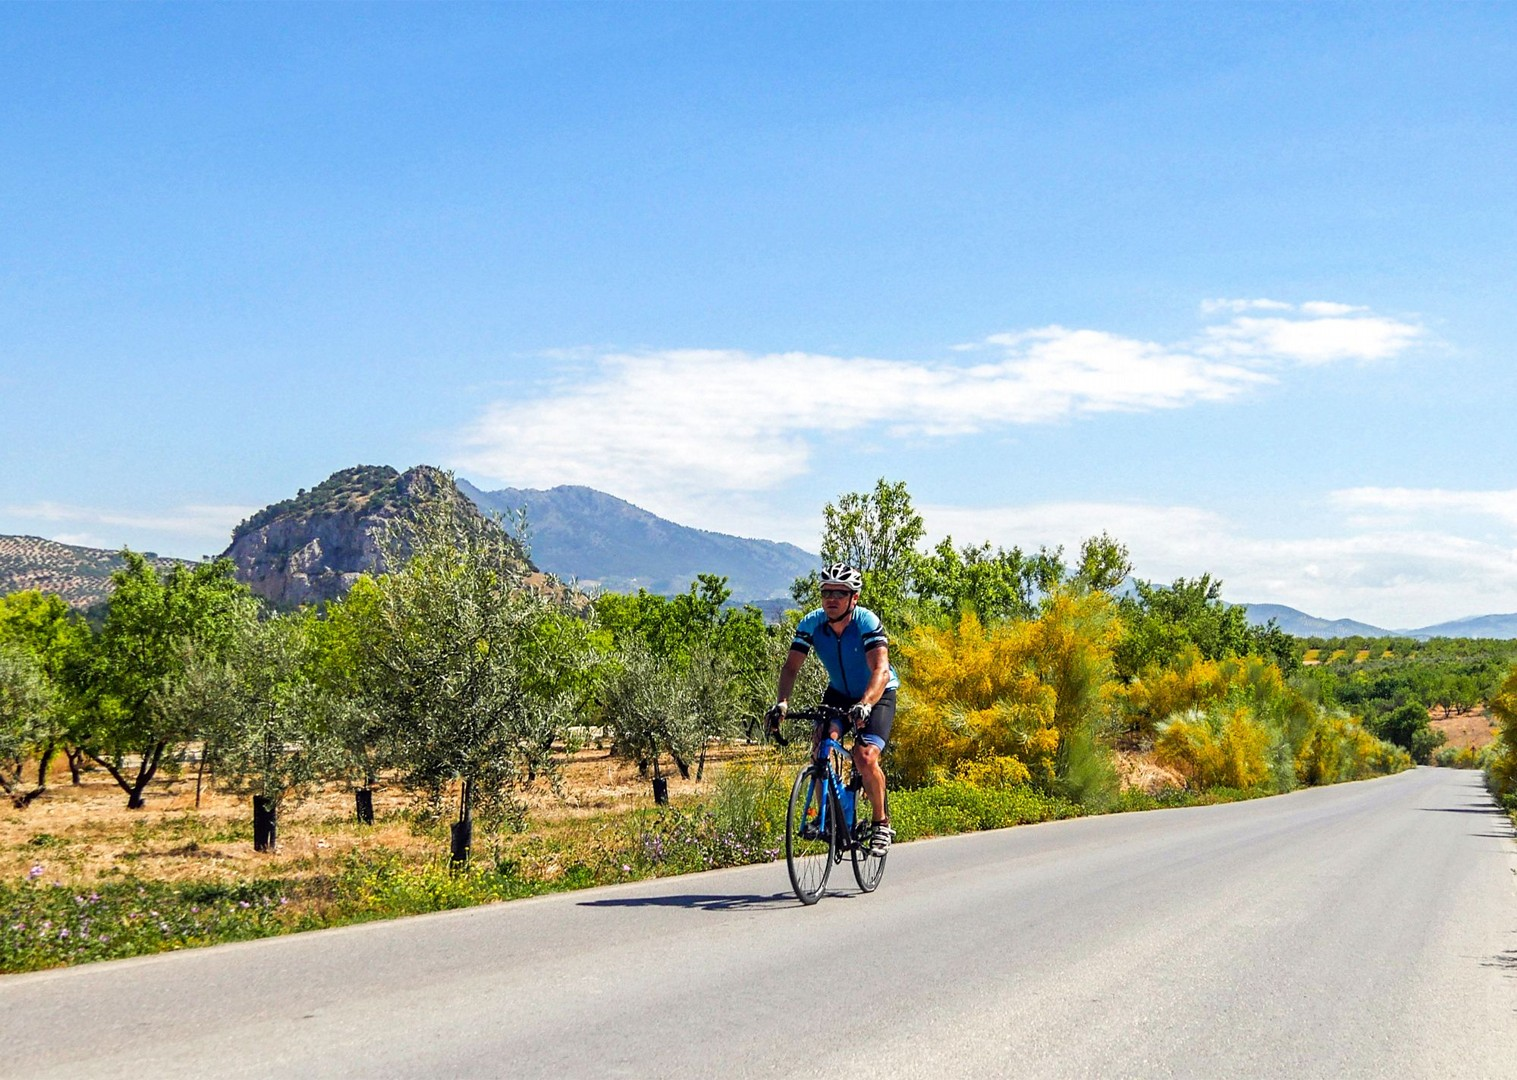 saddle-skedaddle-spain-road-cycling-north-to-south-21-day-journey.jpg - Spain - Basque Country to Andalucia - North to South (21 Days) - Guided Road Cycling Holiday - Road Cycling